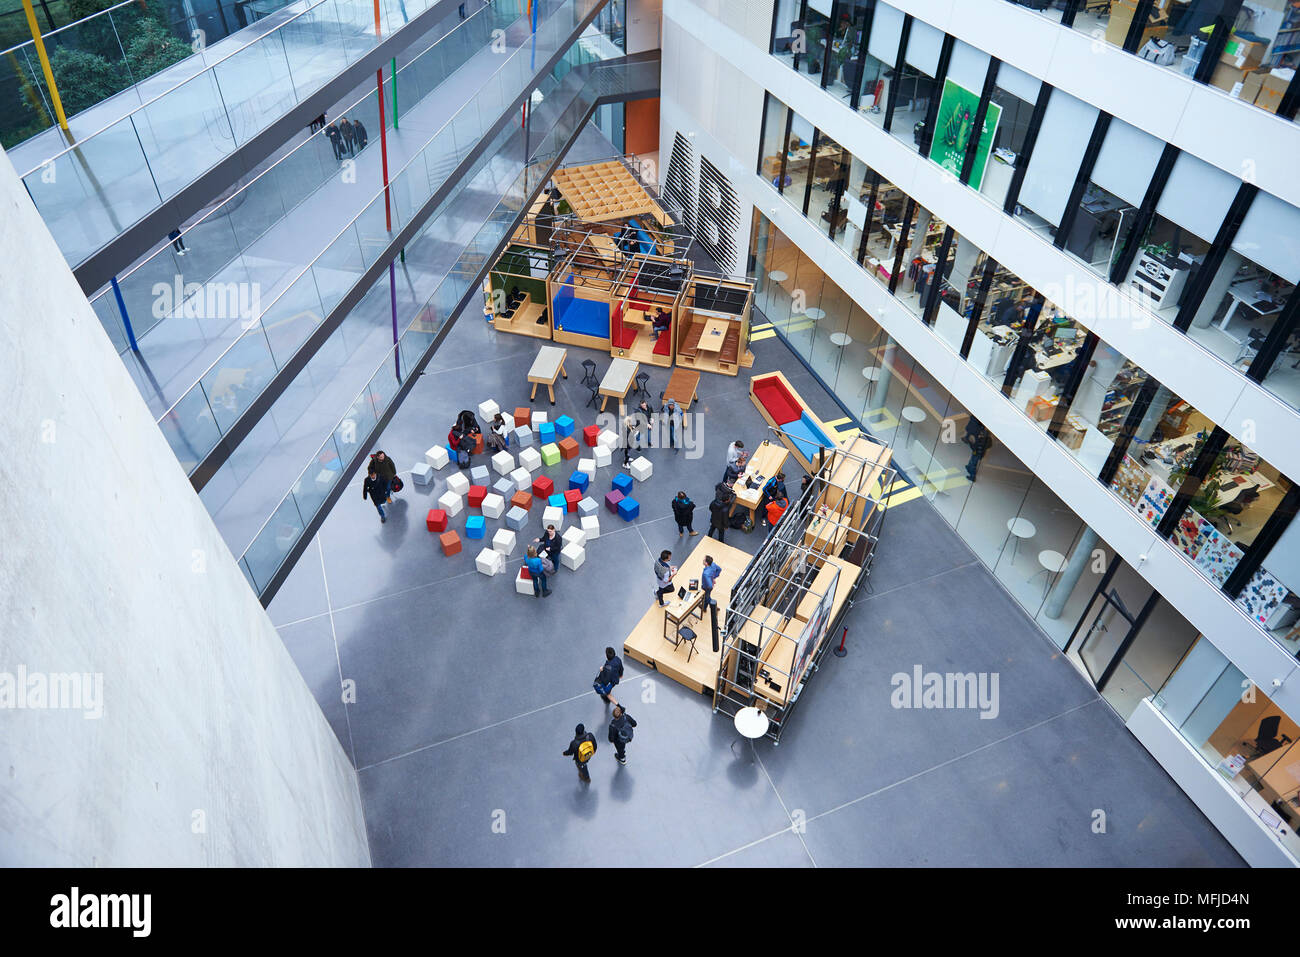 Adidas headquarters in Herzogenaurach Stock Photo: 181728981